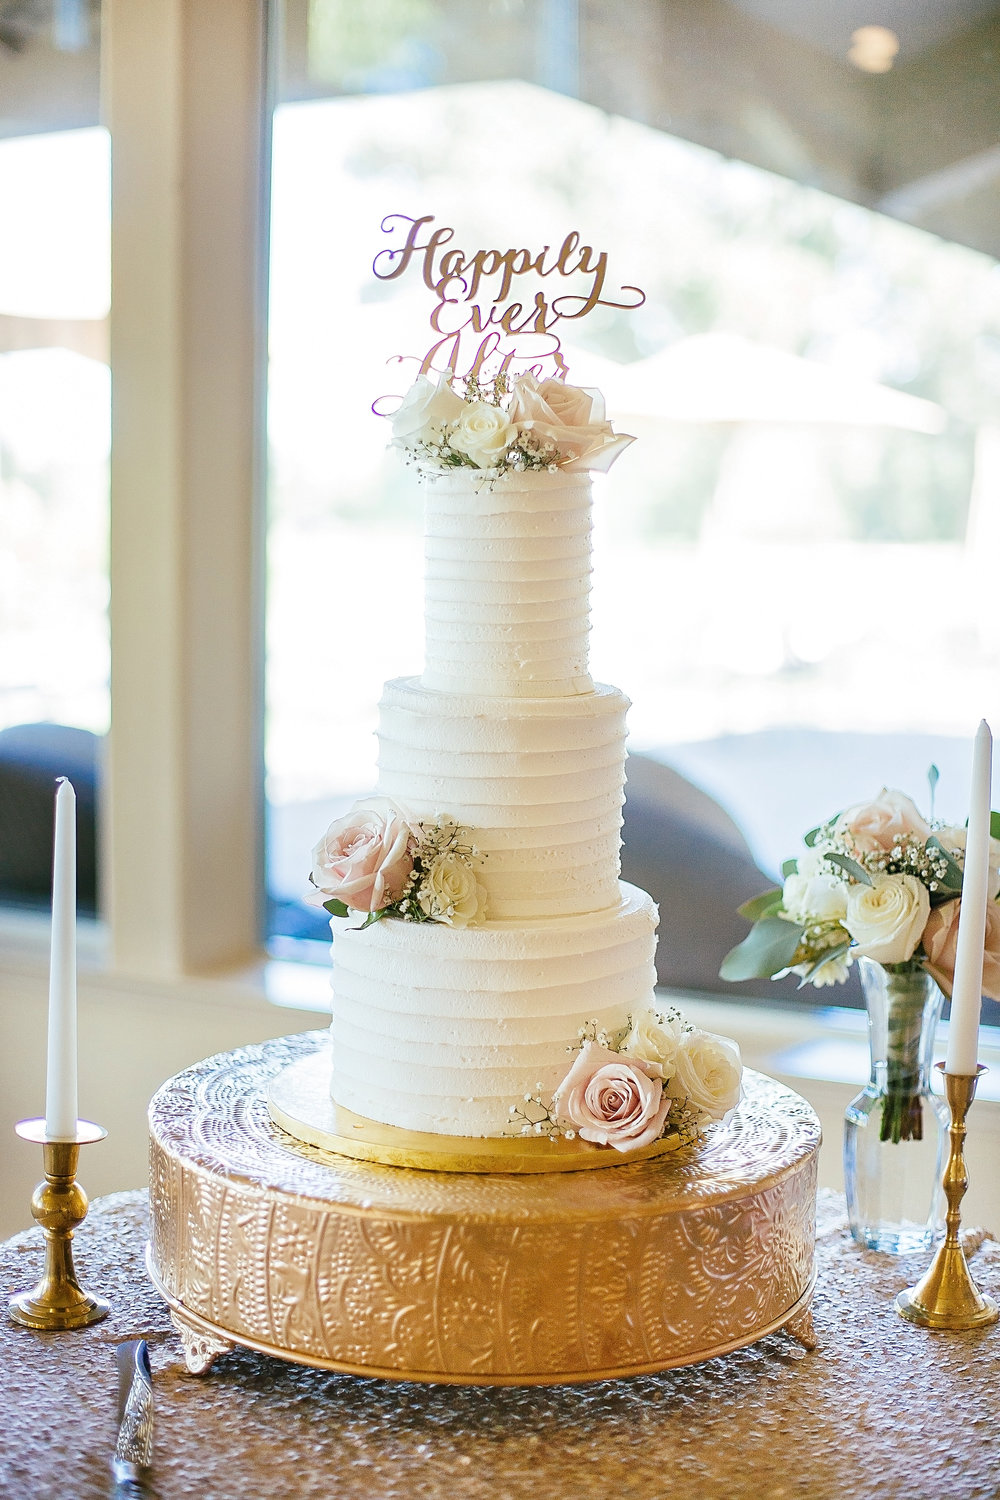 Image by  Anna Perevertaylo Photography , Cake by  Upper Crust Bakery Chico